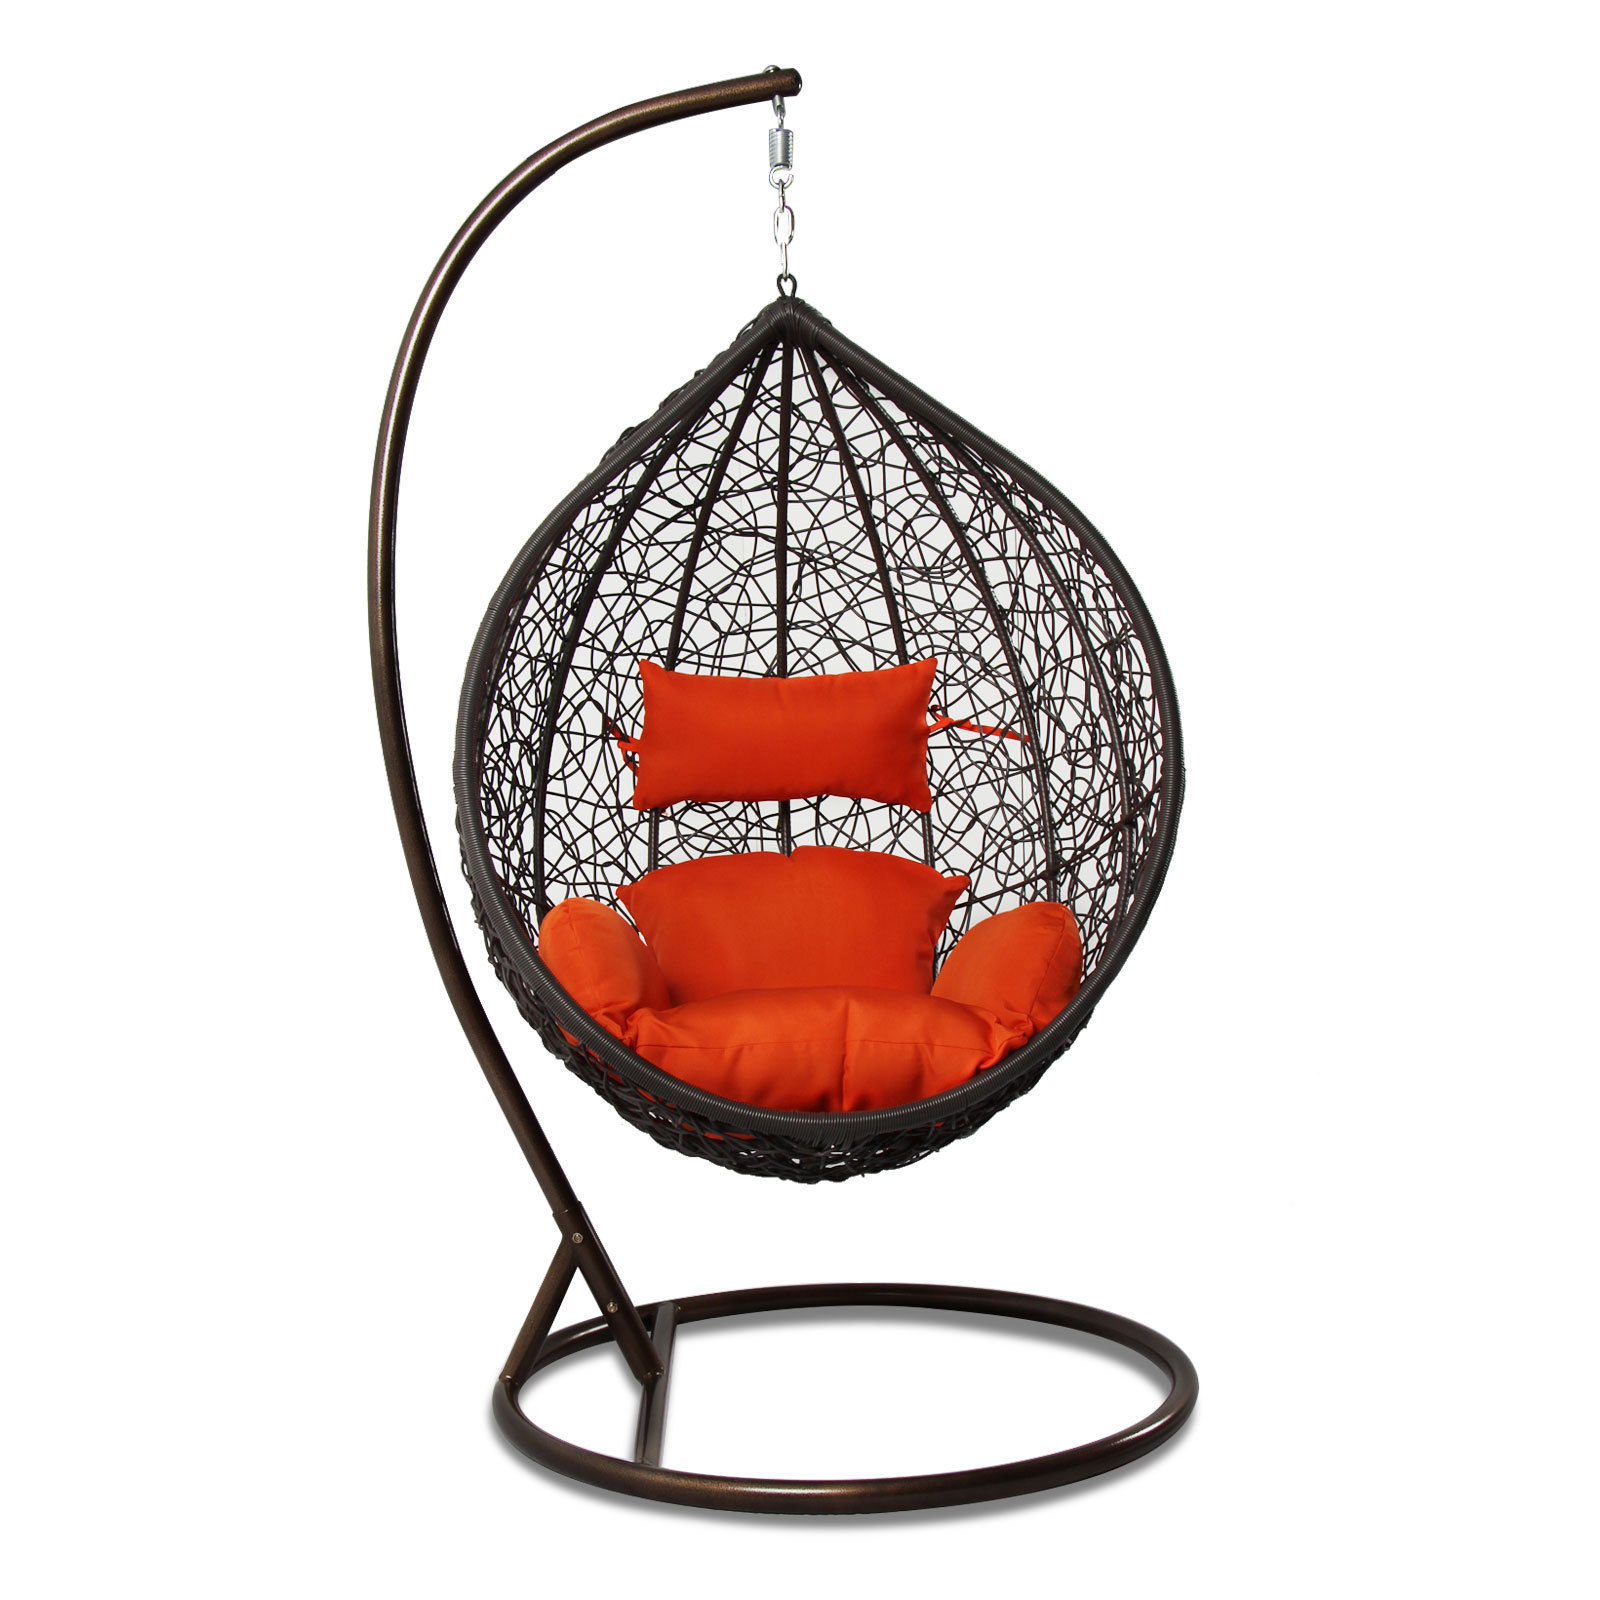 Rattan Outdoor Wicker Hanging Chair Egg Shape Stand Porch ...